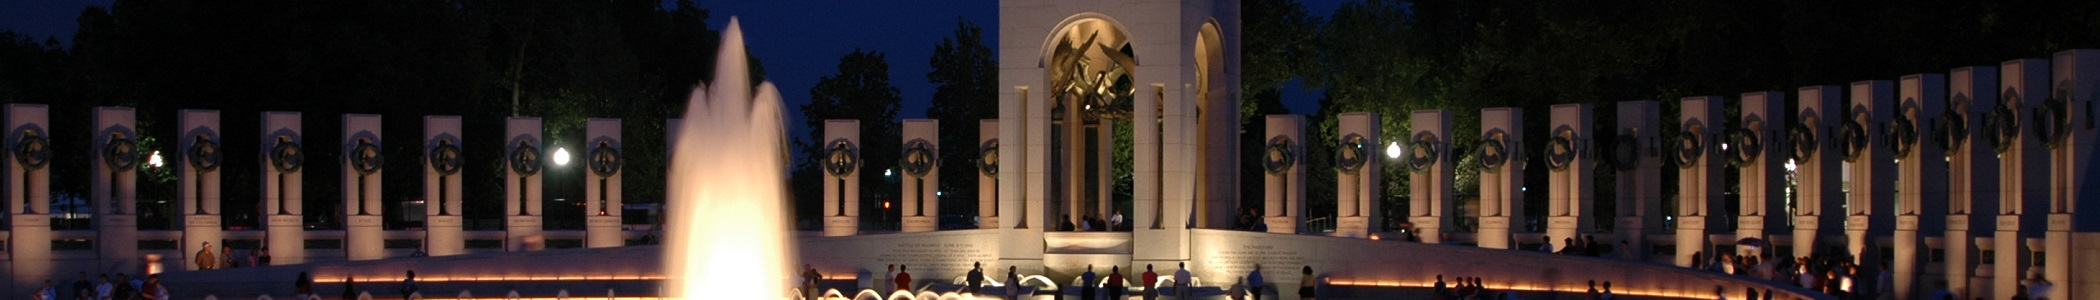 Bildquelle: https://commons.wikimedia.org/wiki/File:National_wwii_memorial_banner.jpg